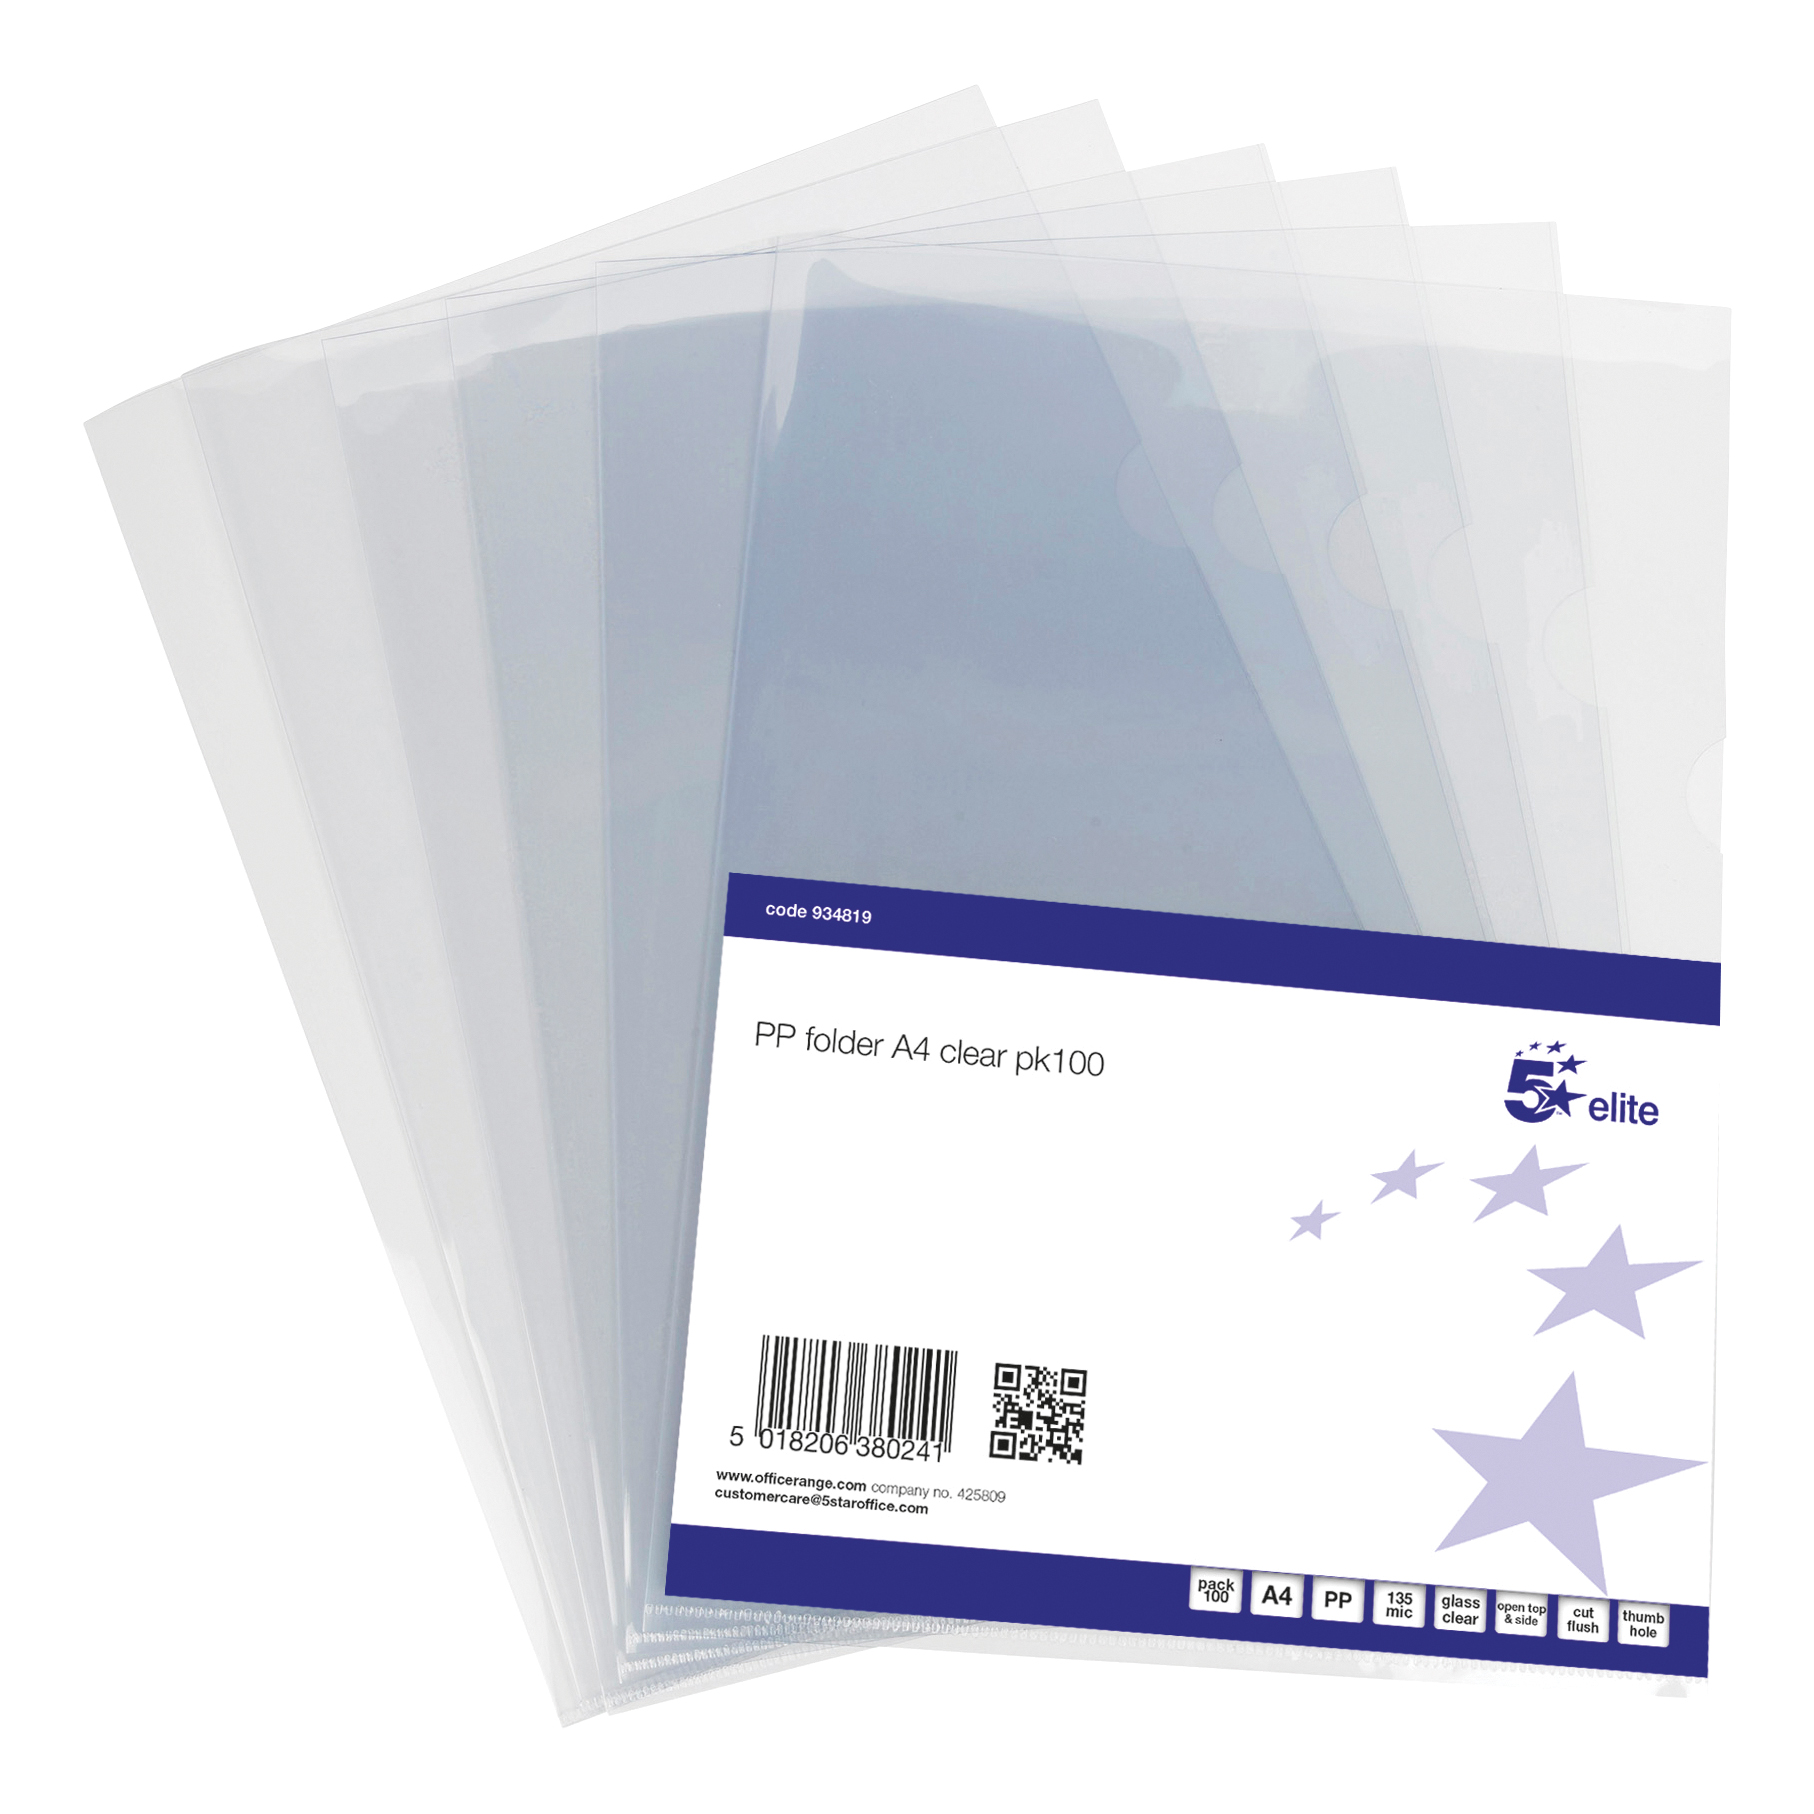 5 Star Elite Folder Cut Flush PVC Top and Side Opening 135 Micron A4 Glass Clear Pack 100